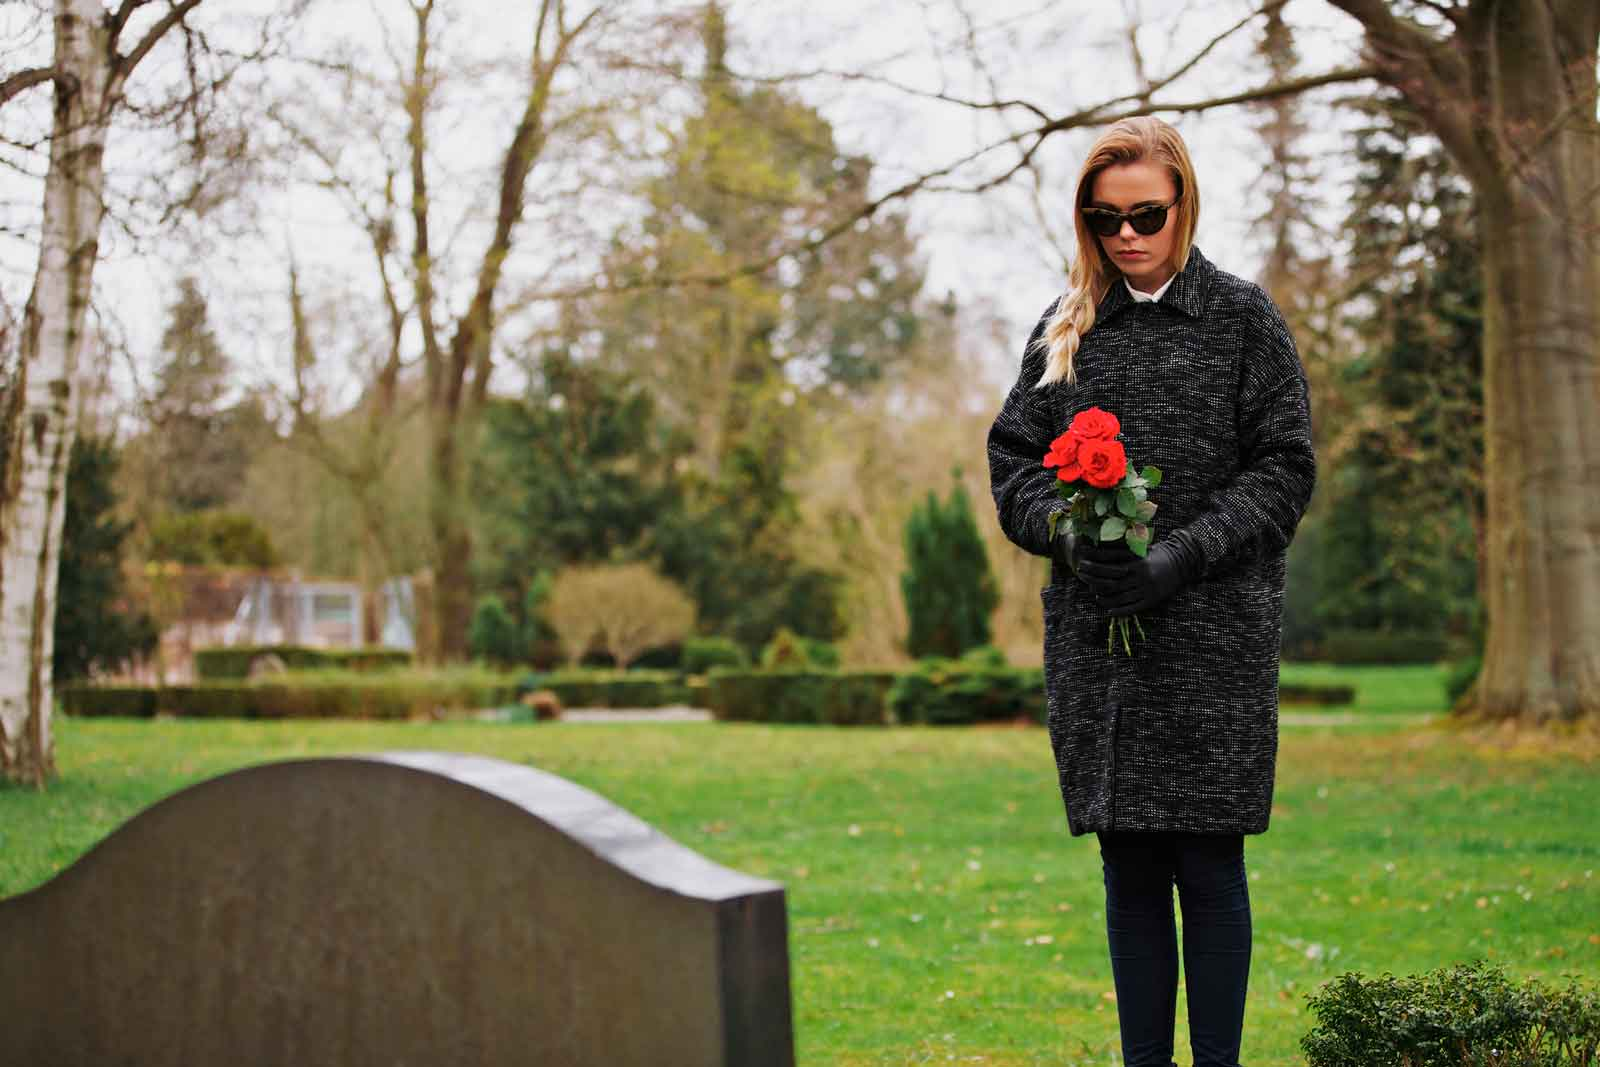 Grief and Loss: What Should I Do and Say?